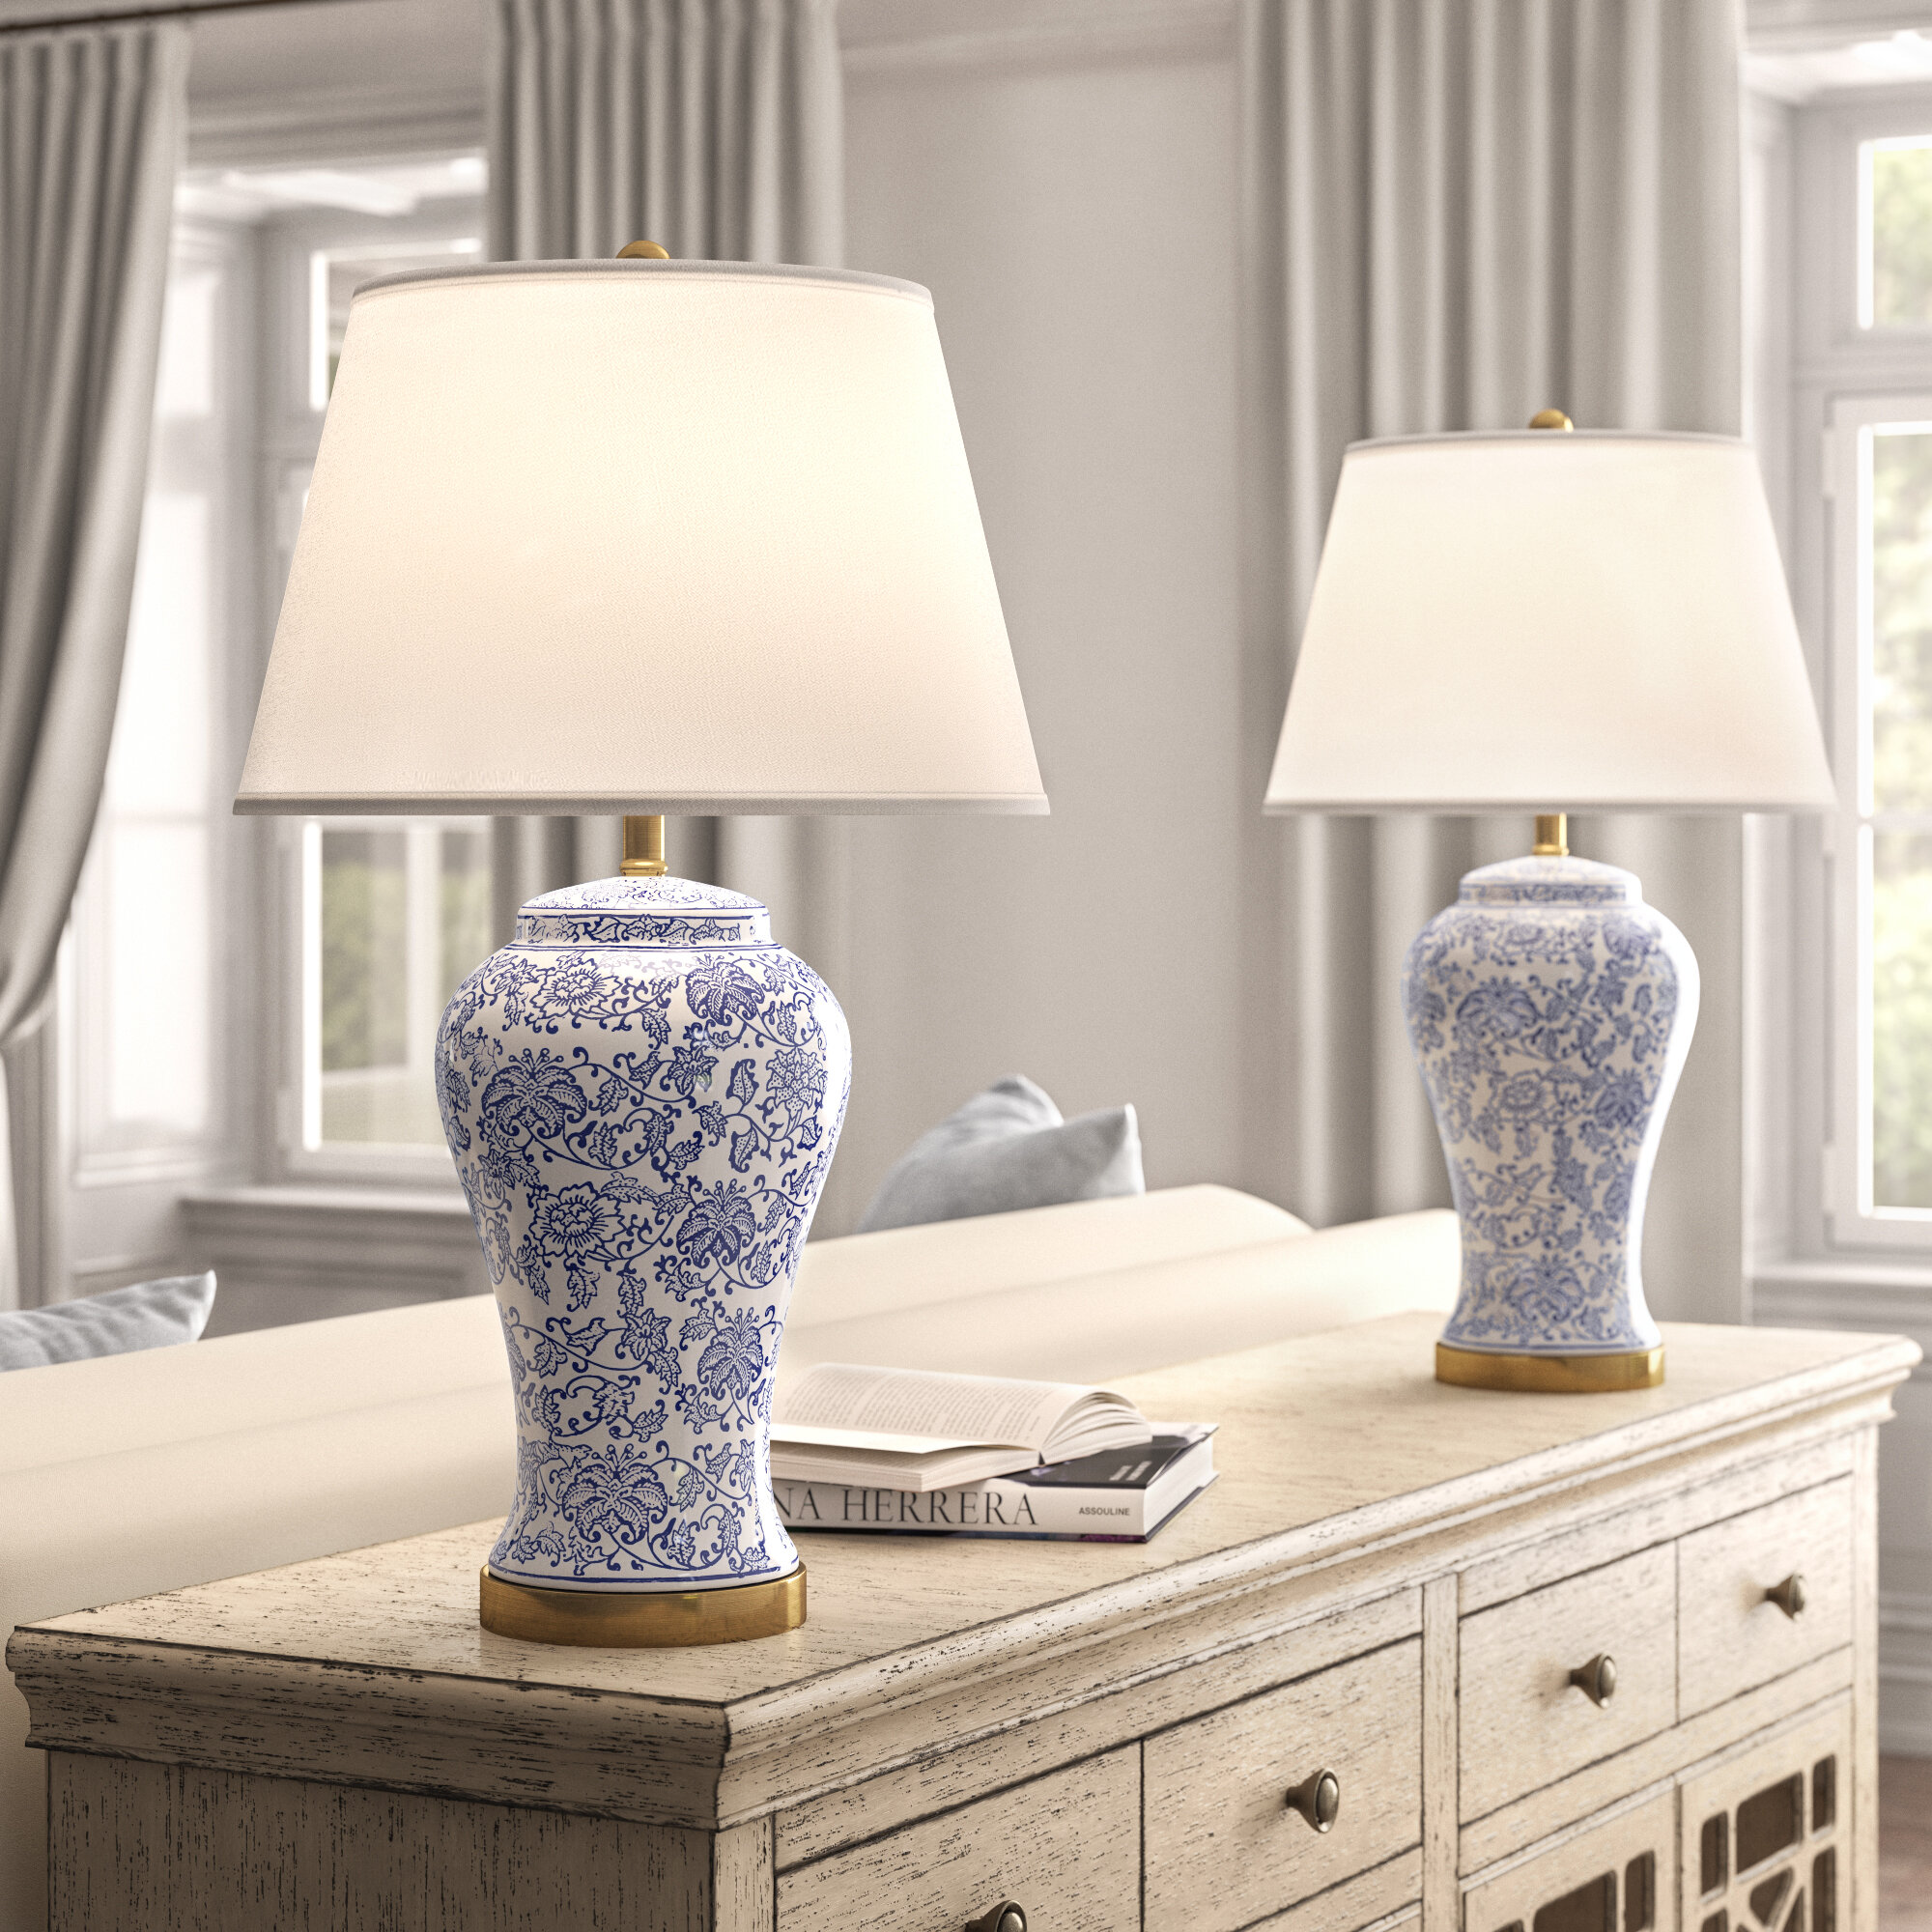 Picture of: Bedside Cottage Country Table Lamps You Ll Love In 2020 Wayfair